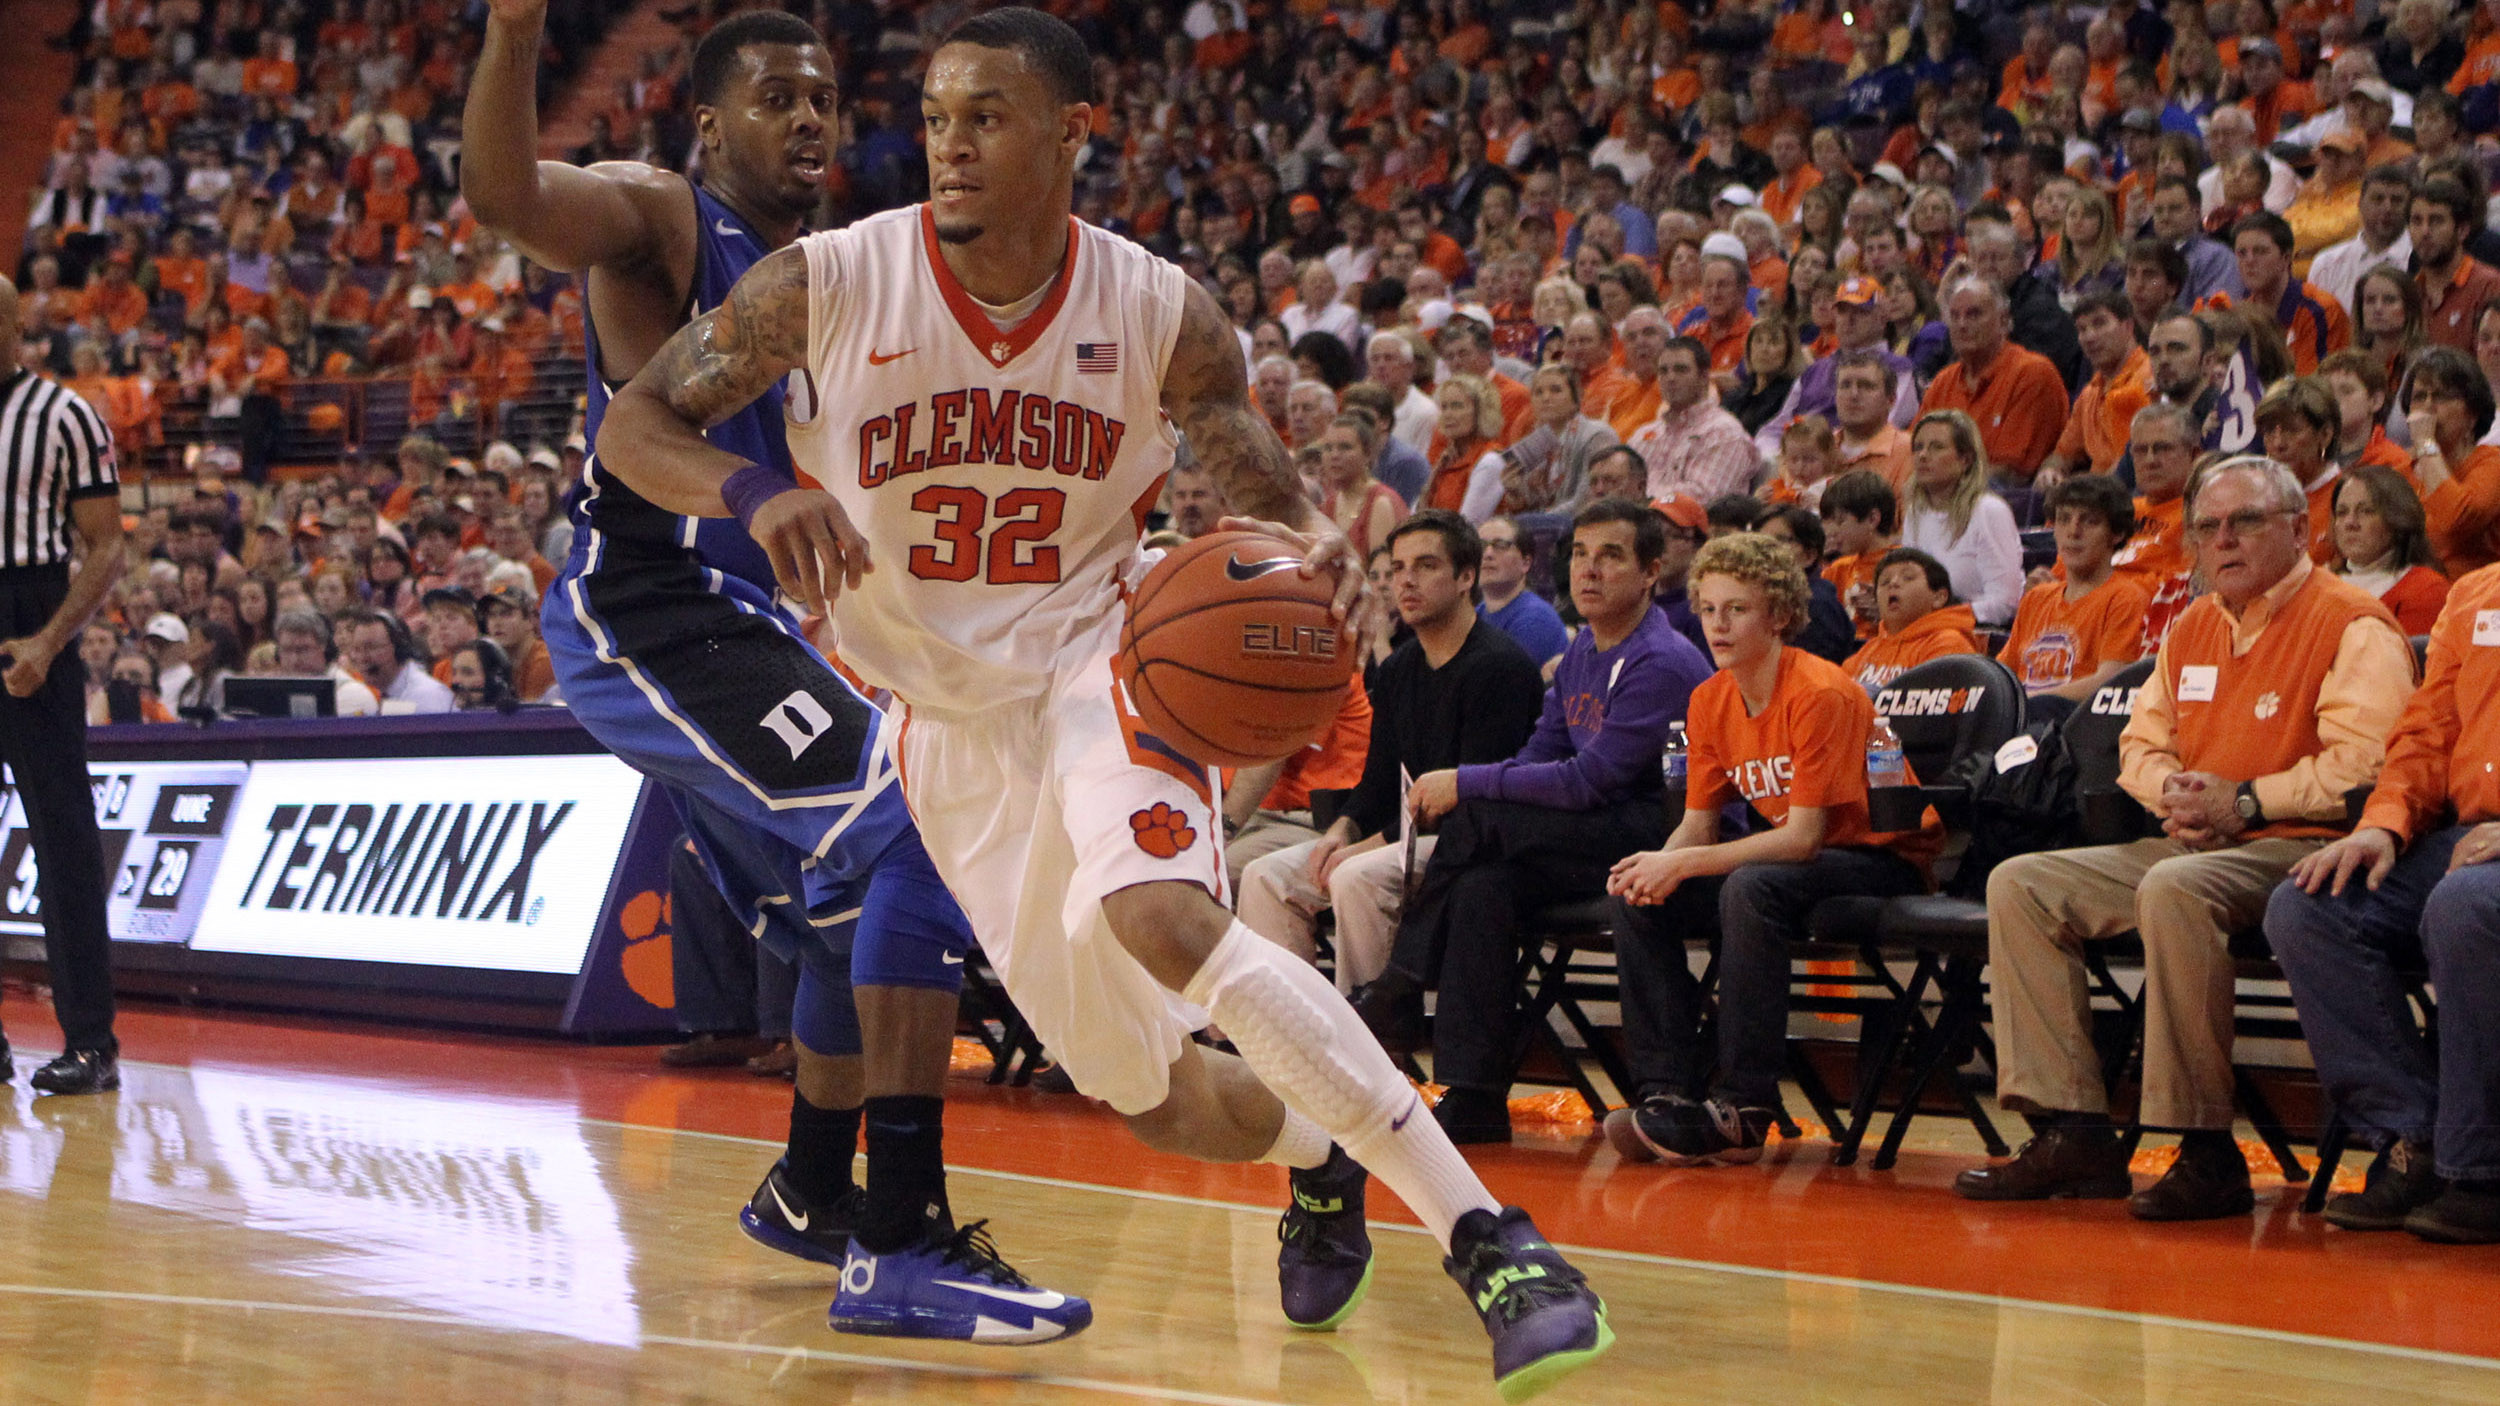 Clemson's Late Run Seals Thrilling 72-59 Victory over No. 13 Duke